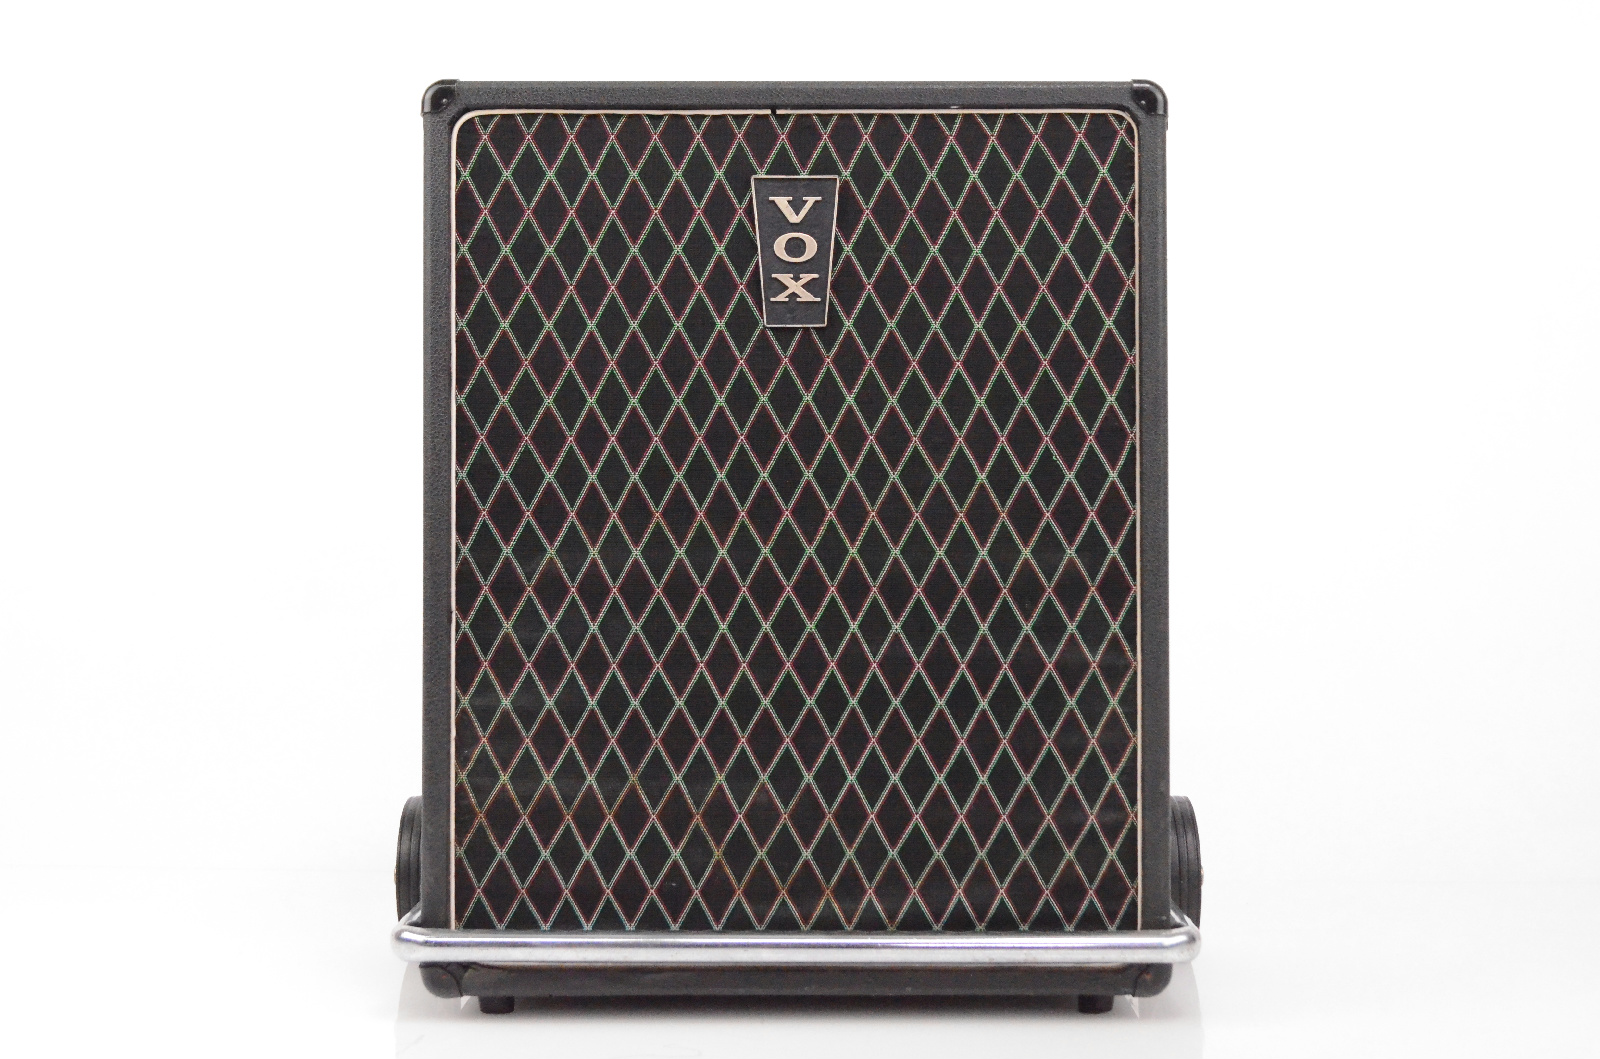 Vox V1241 Kensington Bass Combo Amp Amplifier w/ Cart Footswitch & Cover #32092